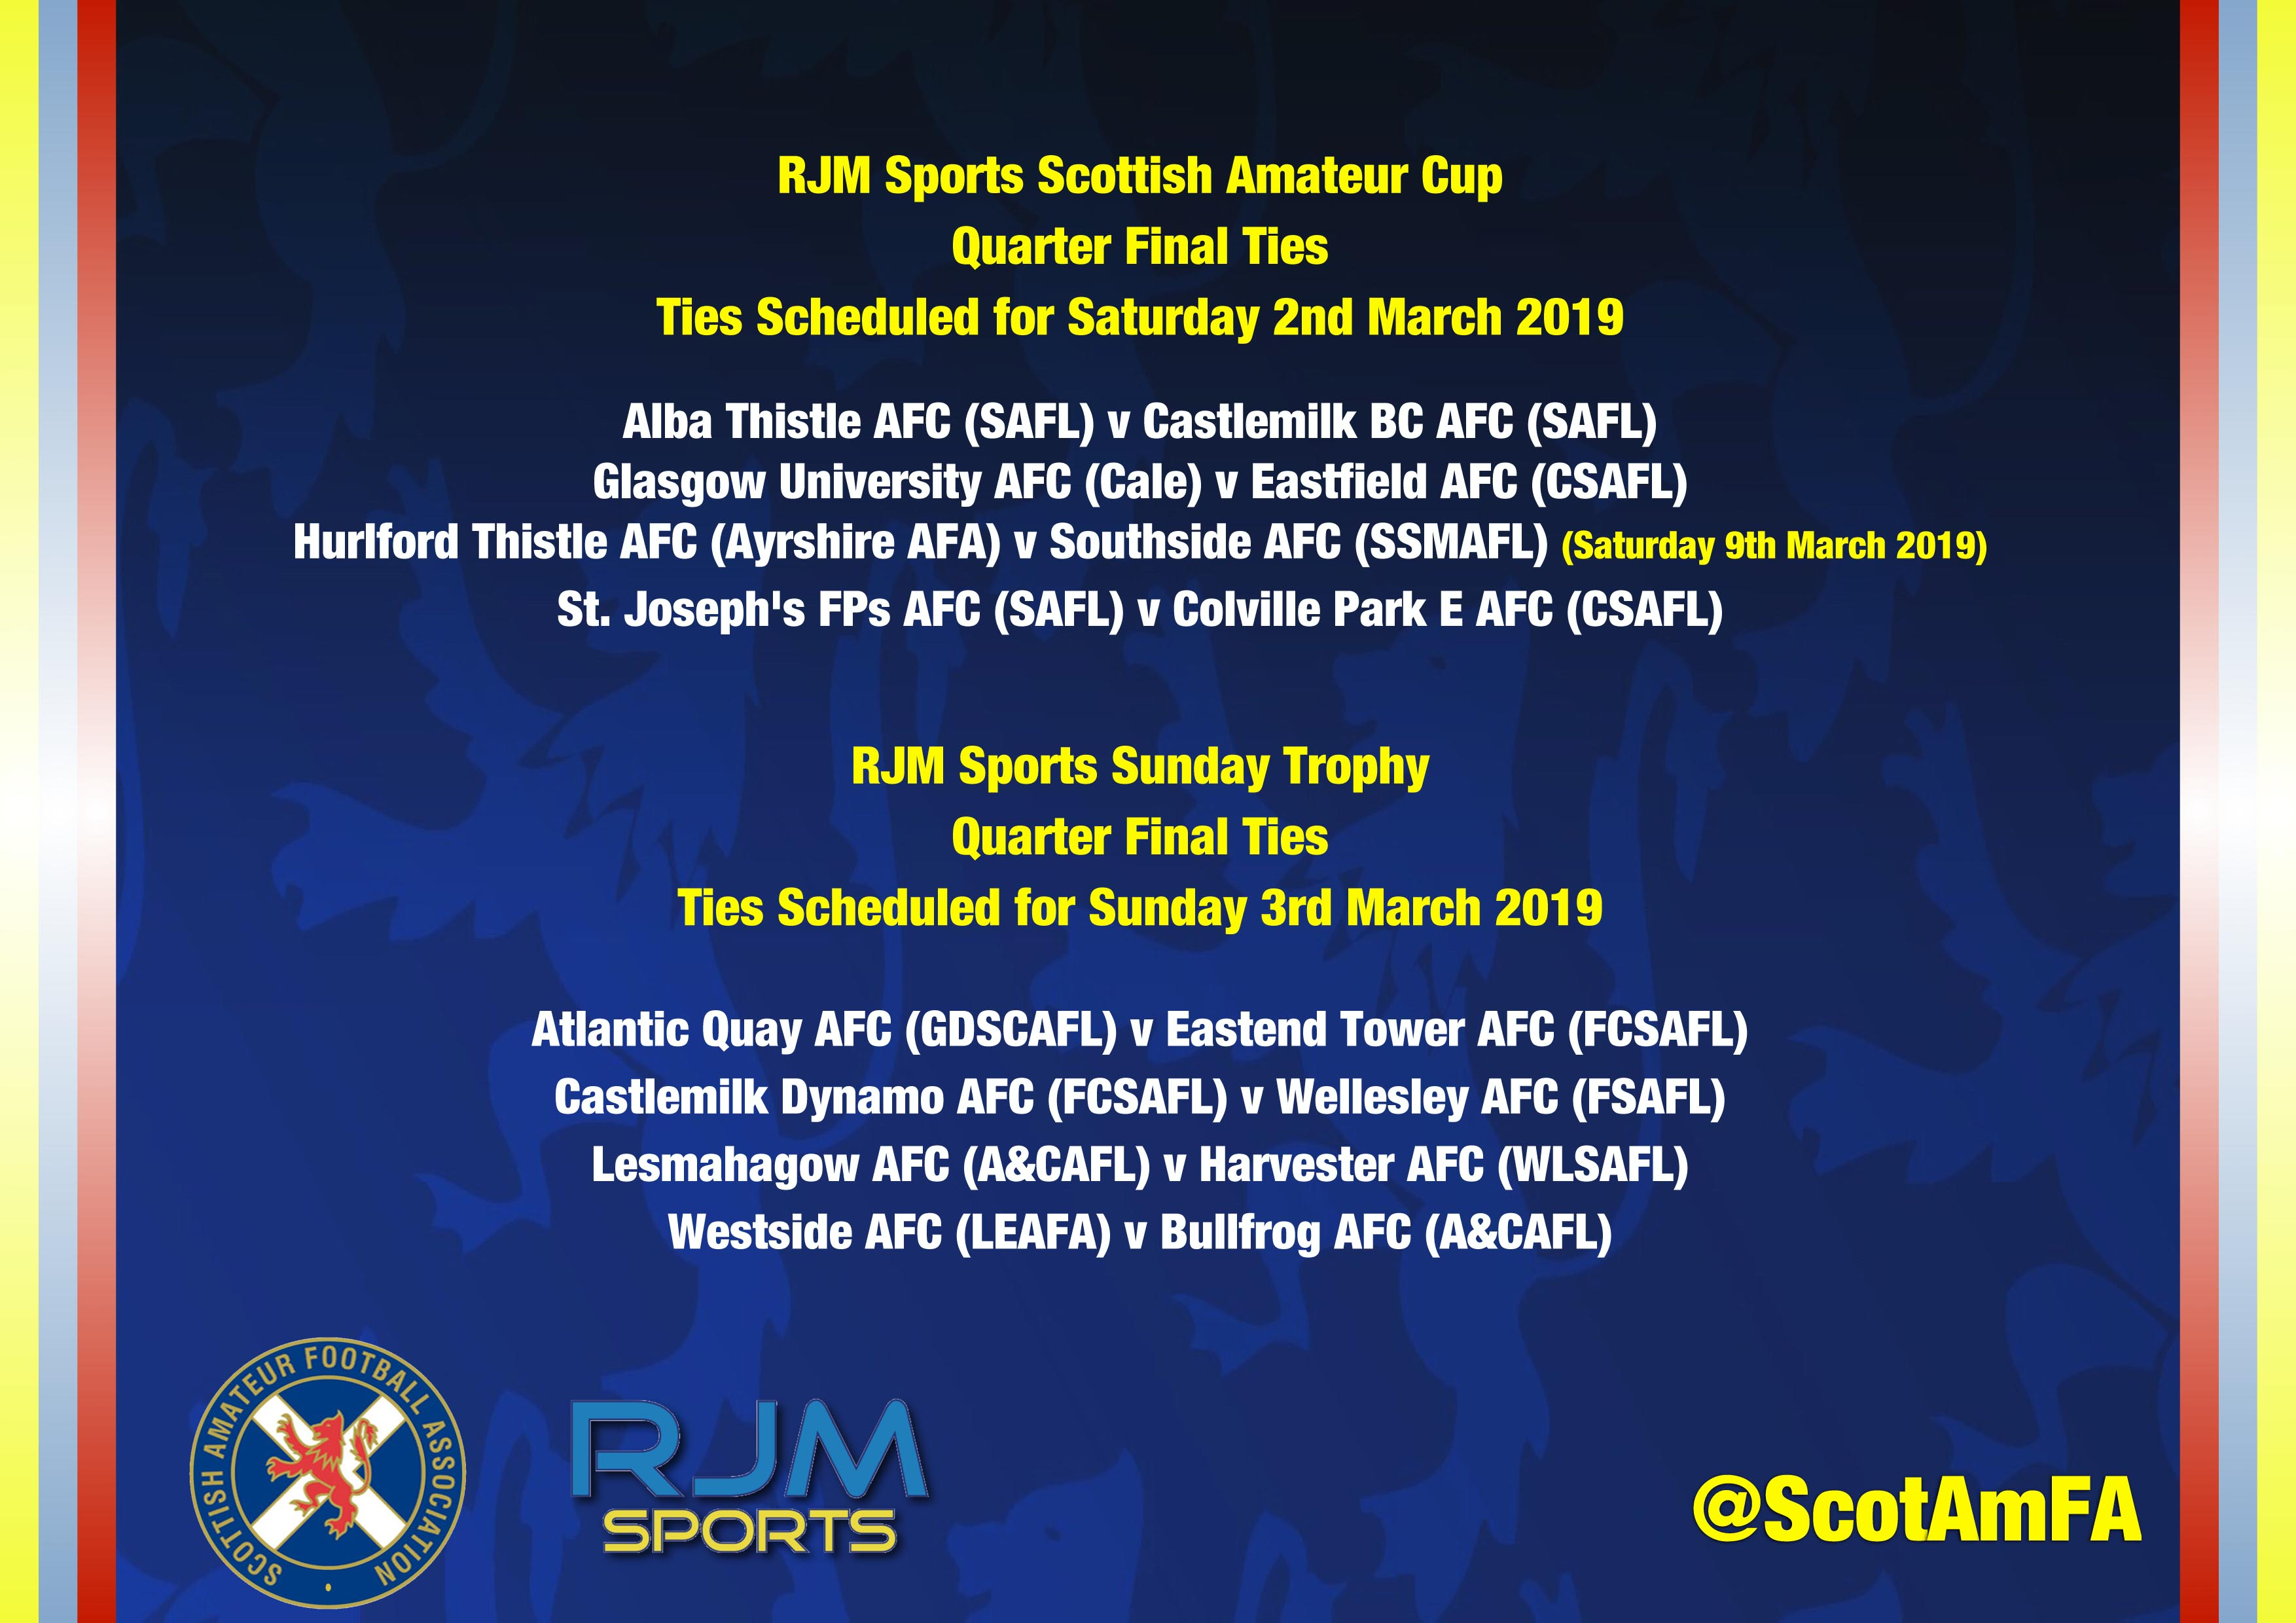 RJM Sports Scottish Amateur Cup & Sunday Trophy Quarter Final Ties